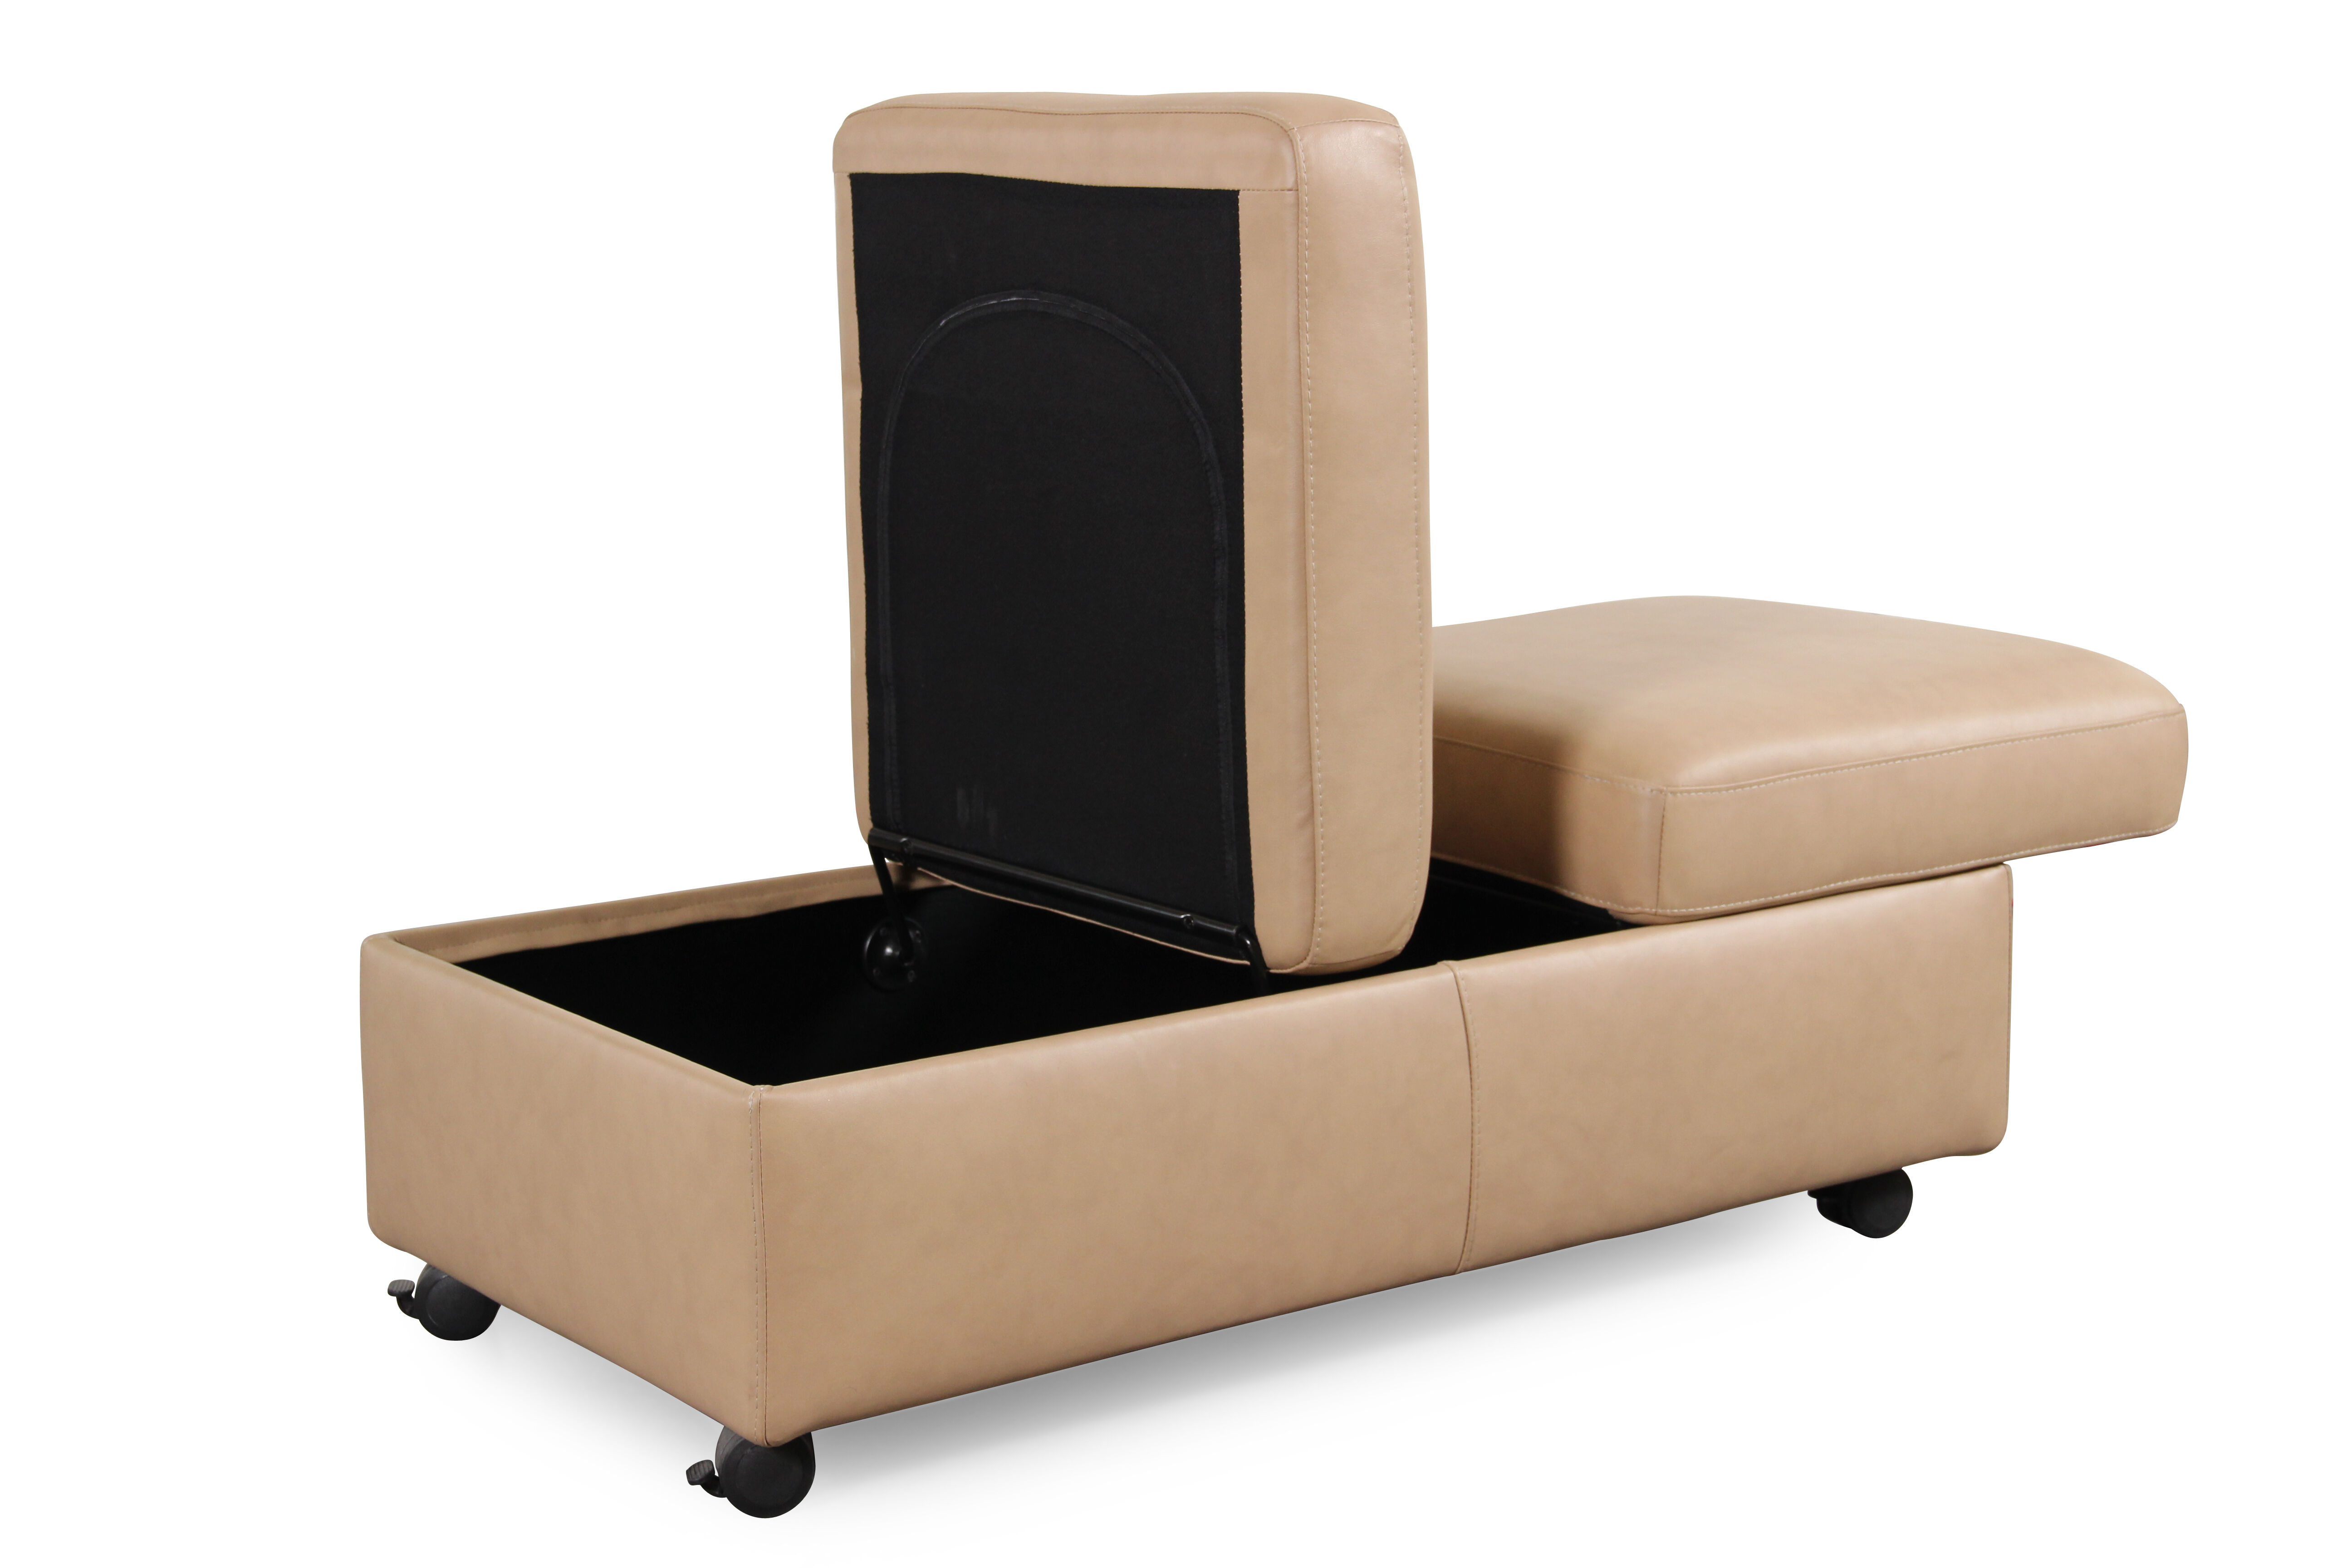 Stressless Sofa Ottoman Stressless Paloma Sand Double Ottoman With Table Top